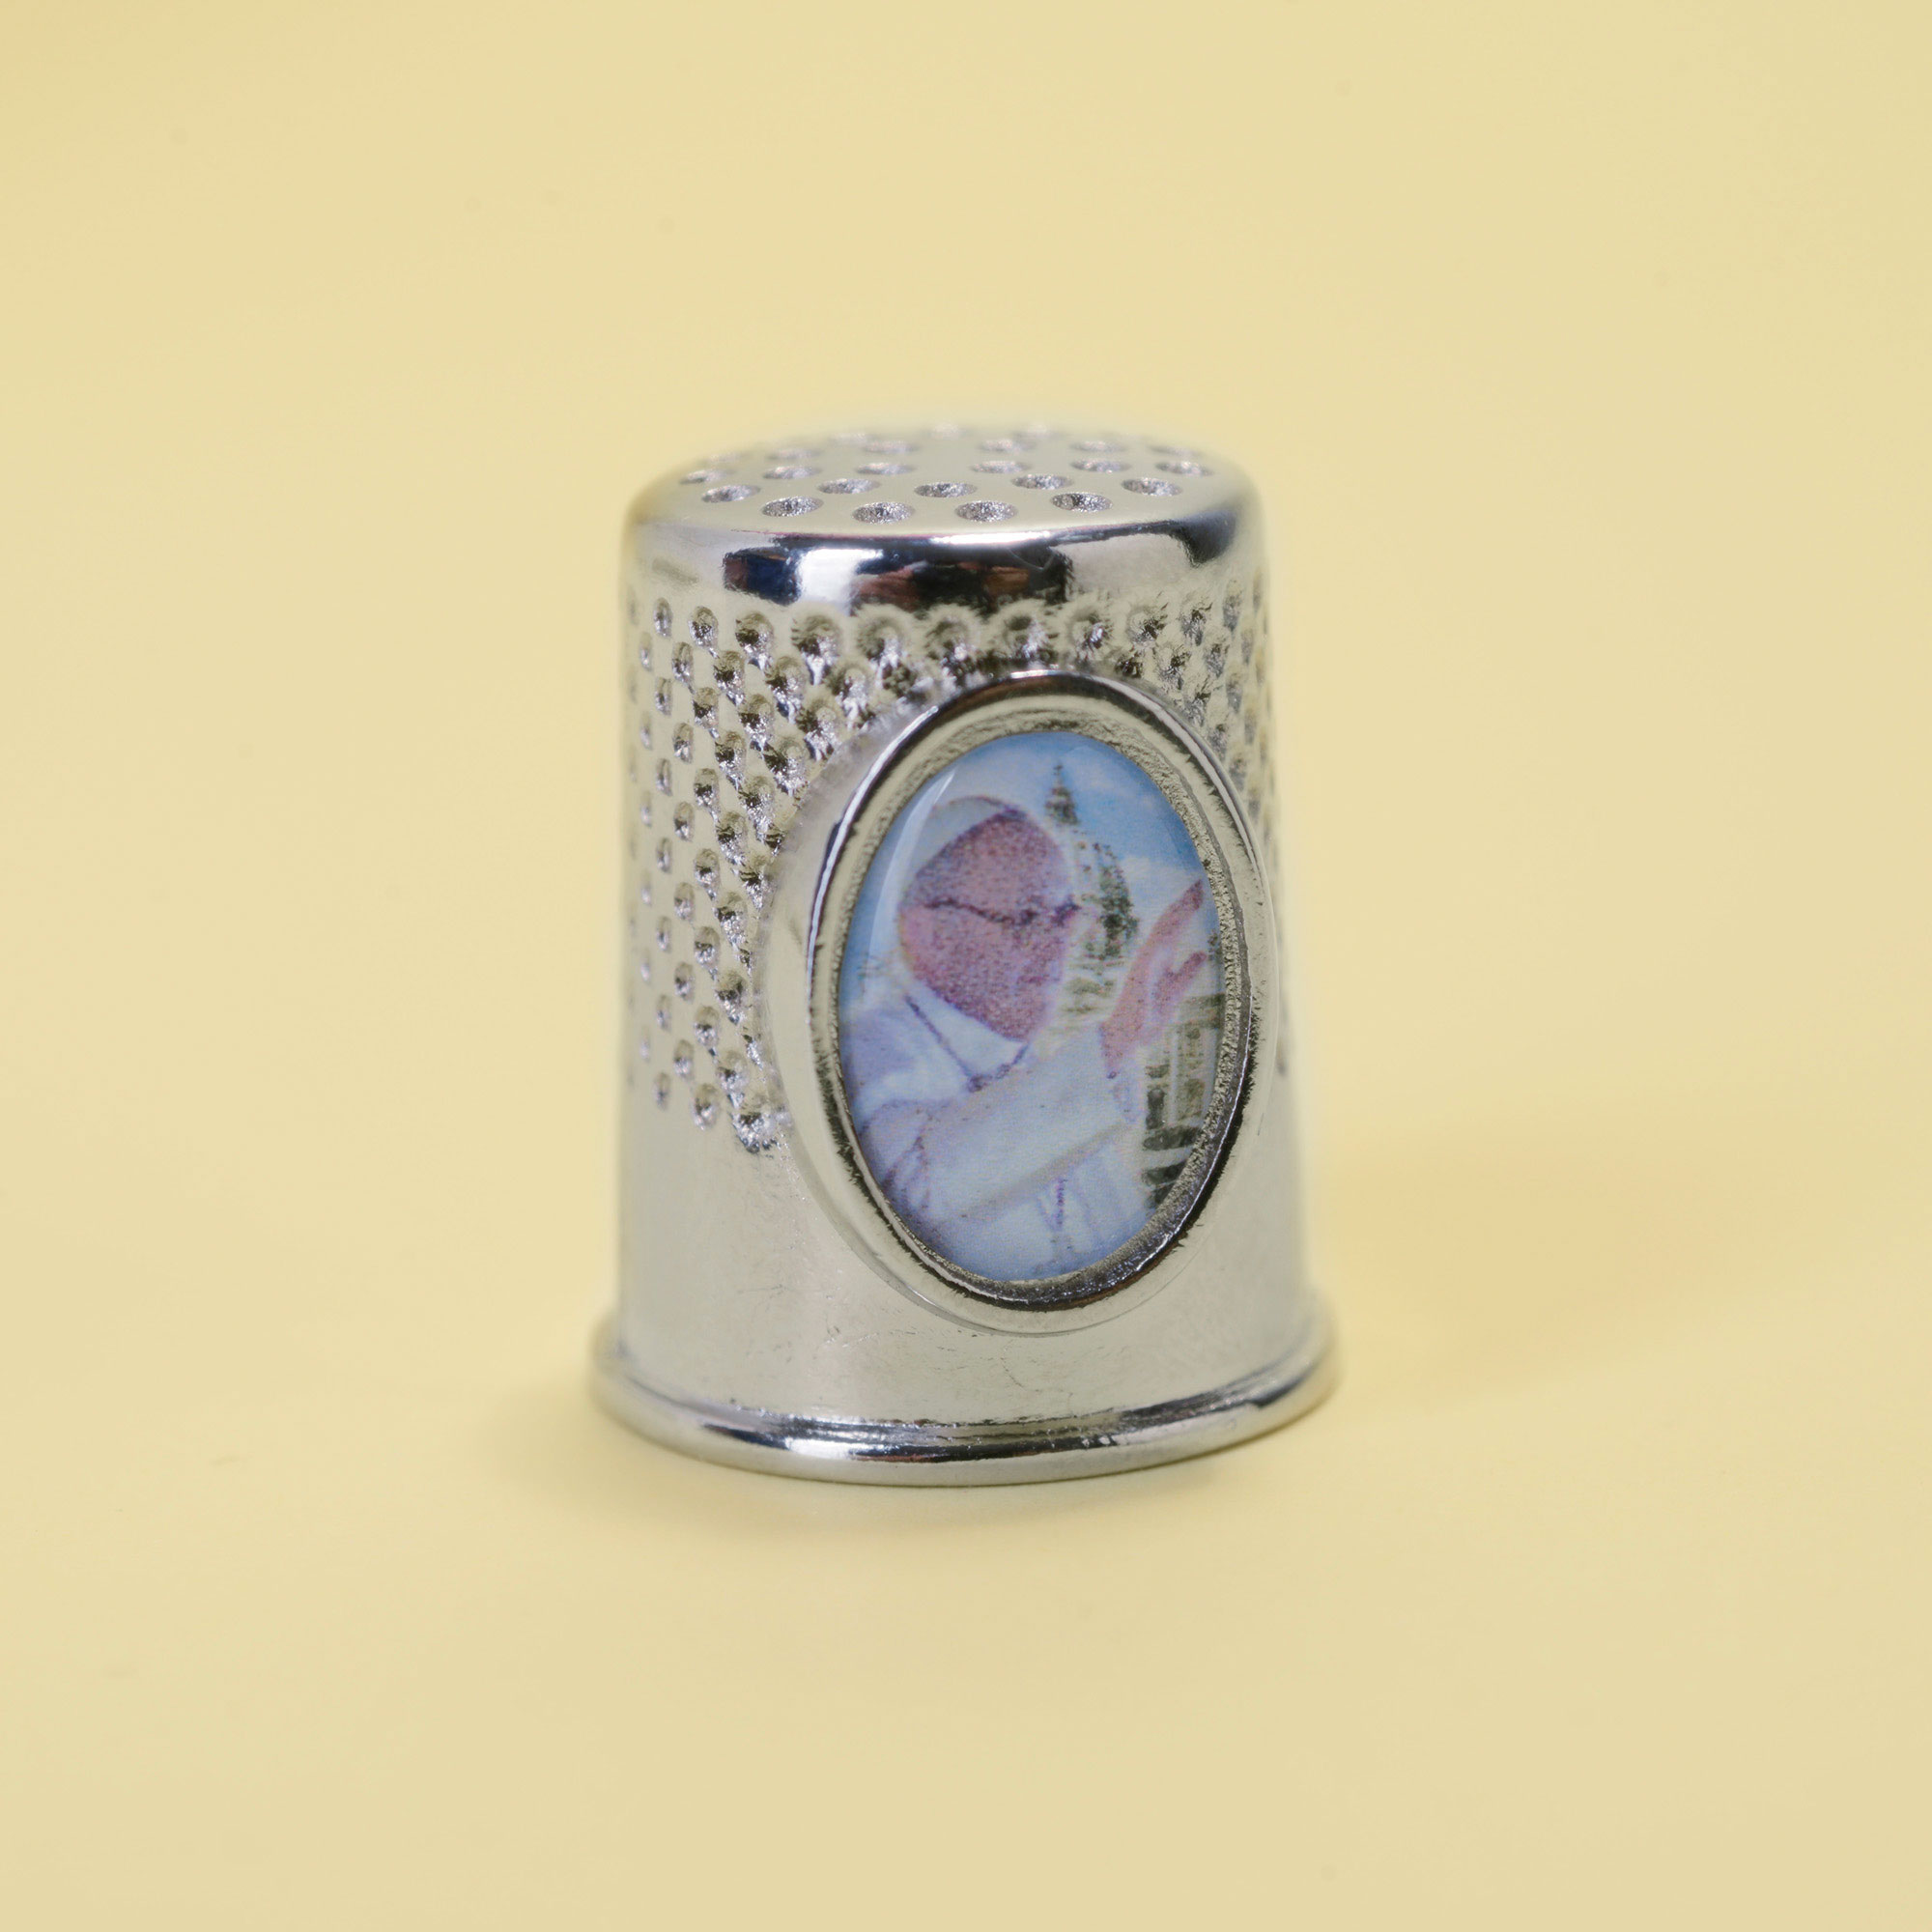 Metal thimble with the image of Pope Francis.